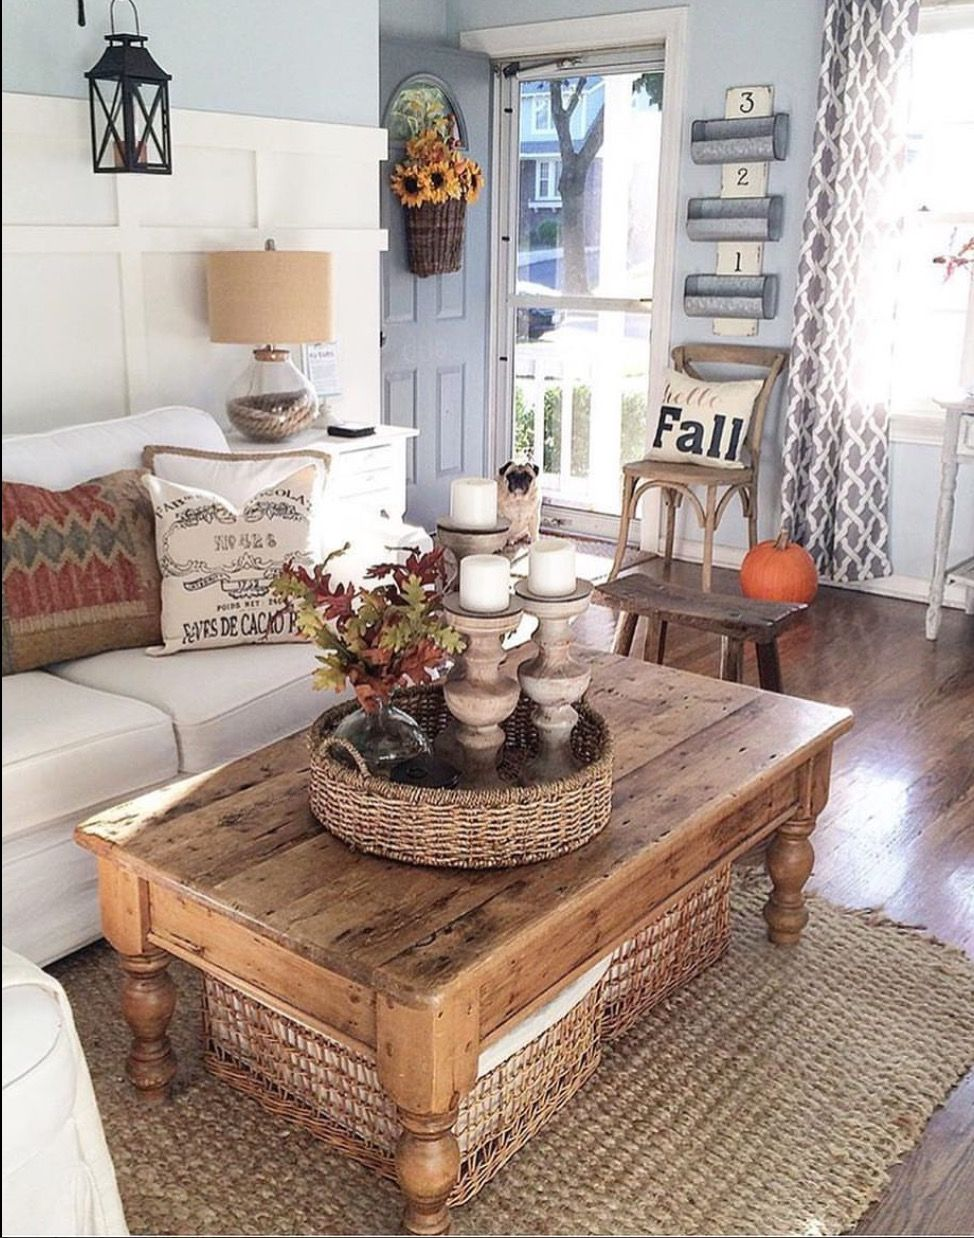 Coffee table with baskets underneath Farm house living